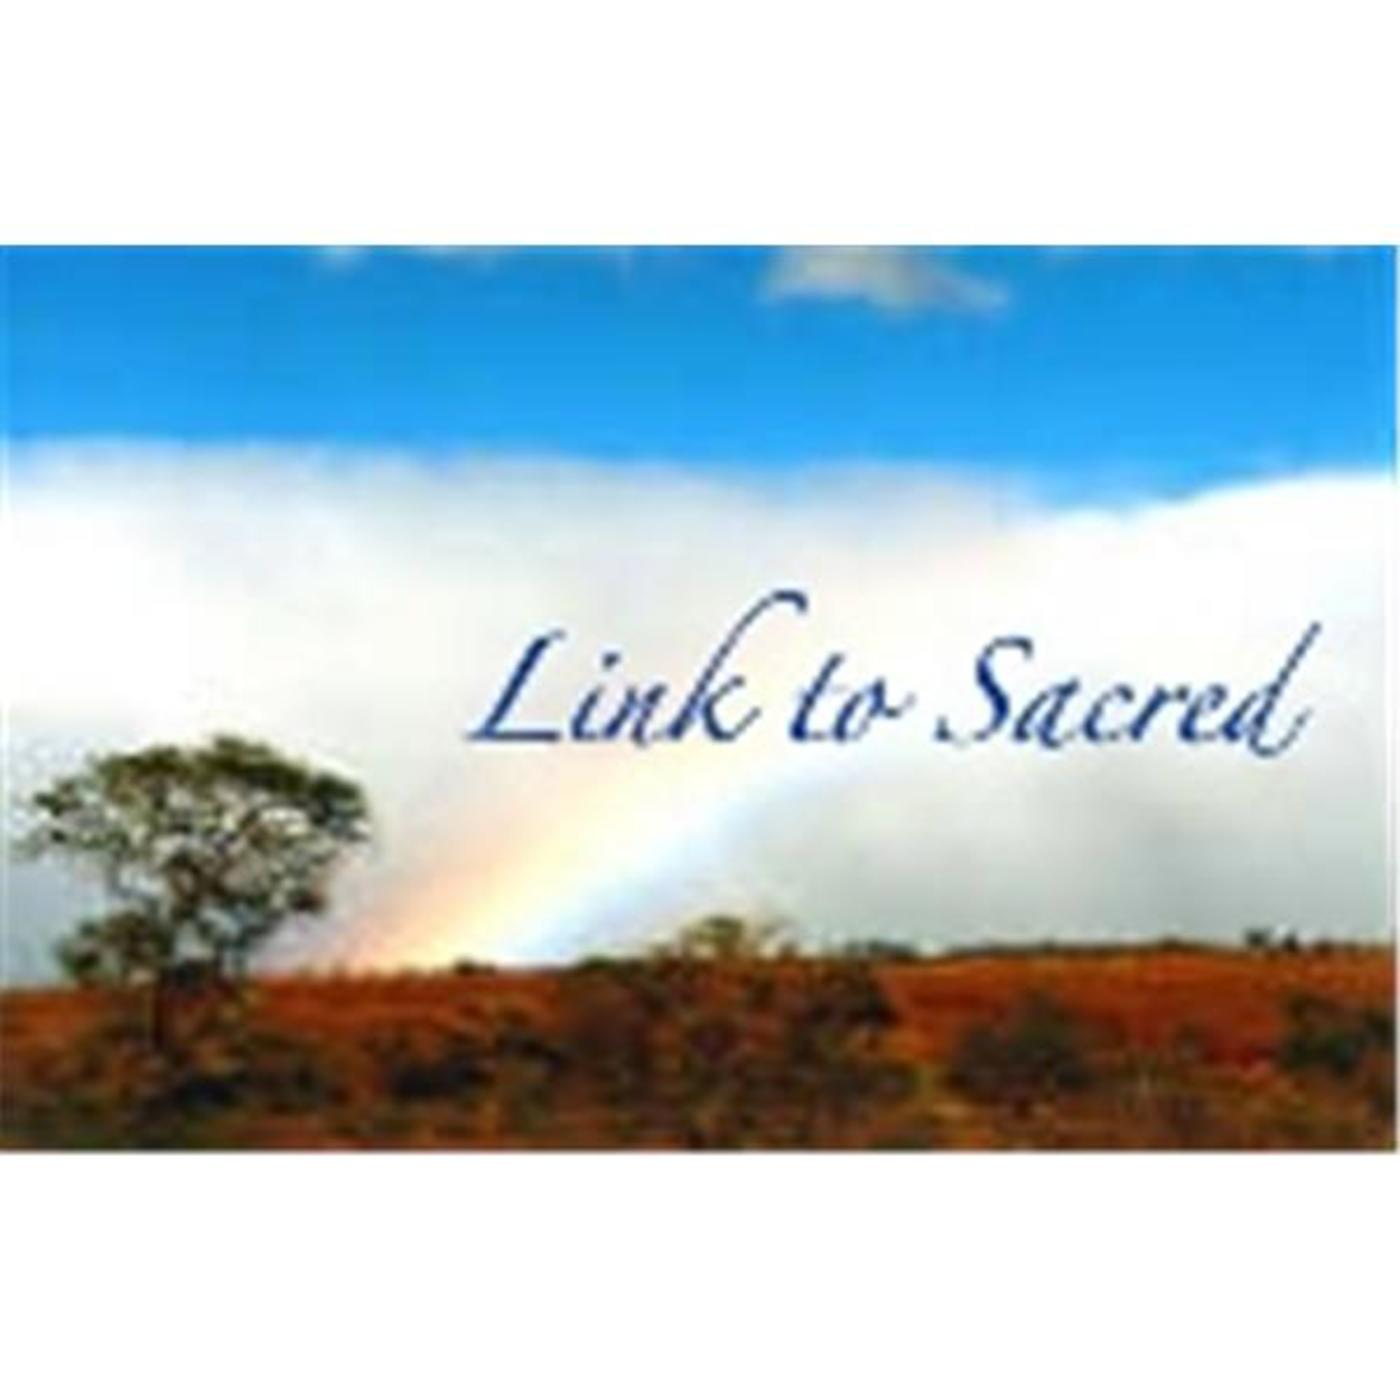 Link to our Sacred Selves